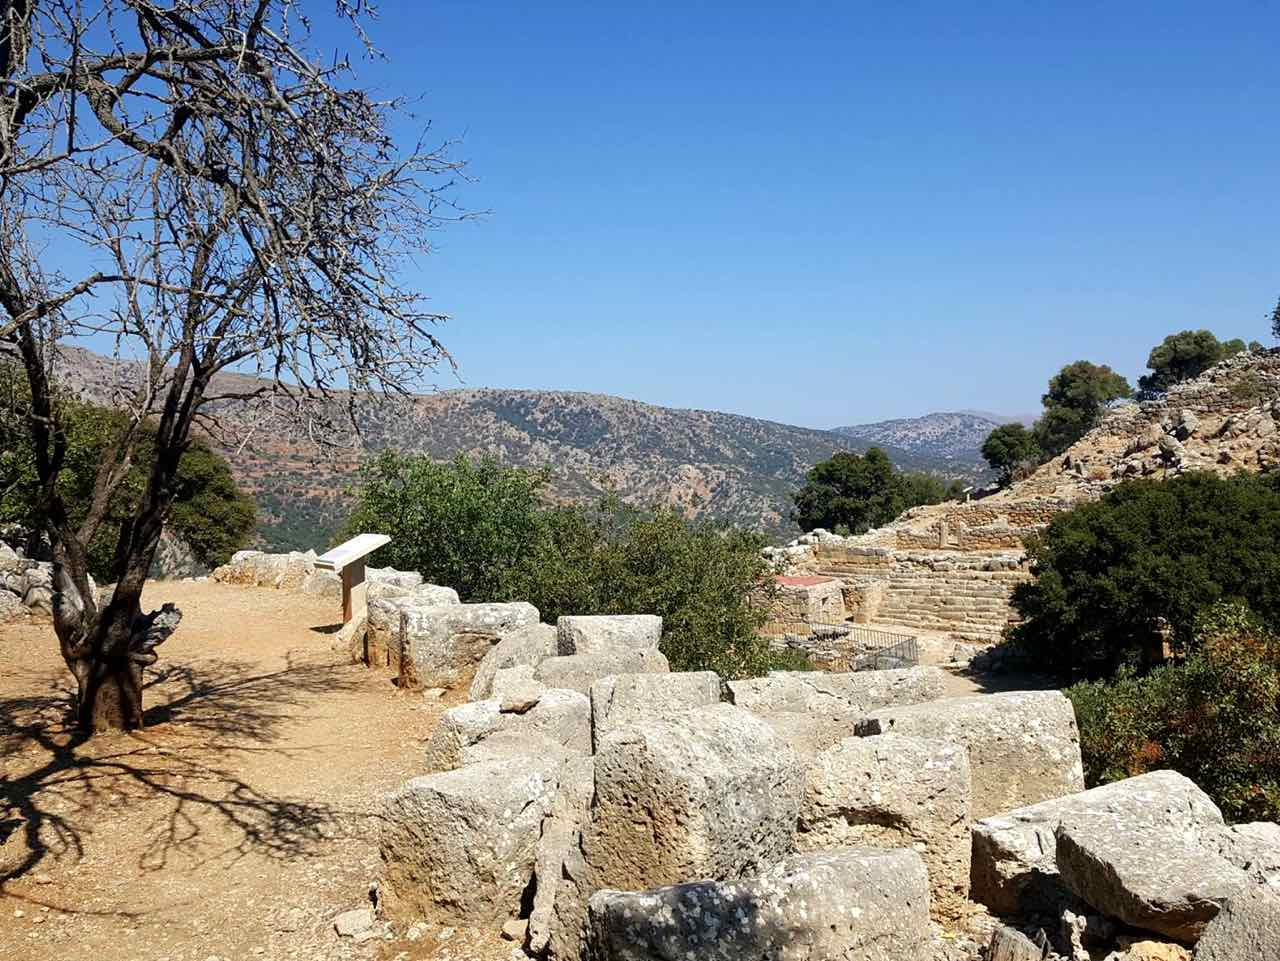 lato ancient city, kritsa village, agios nikolaos, crete, ancient minoan sites, crete car rental, crete hire